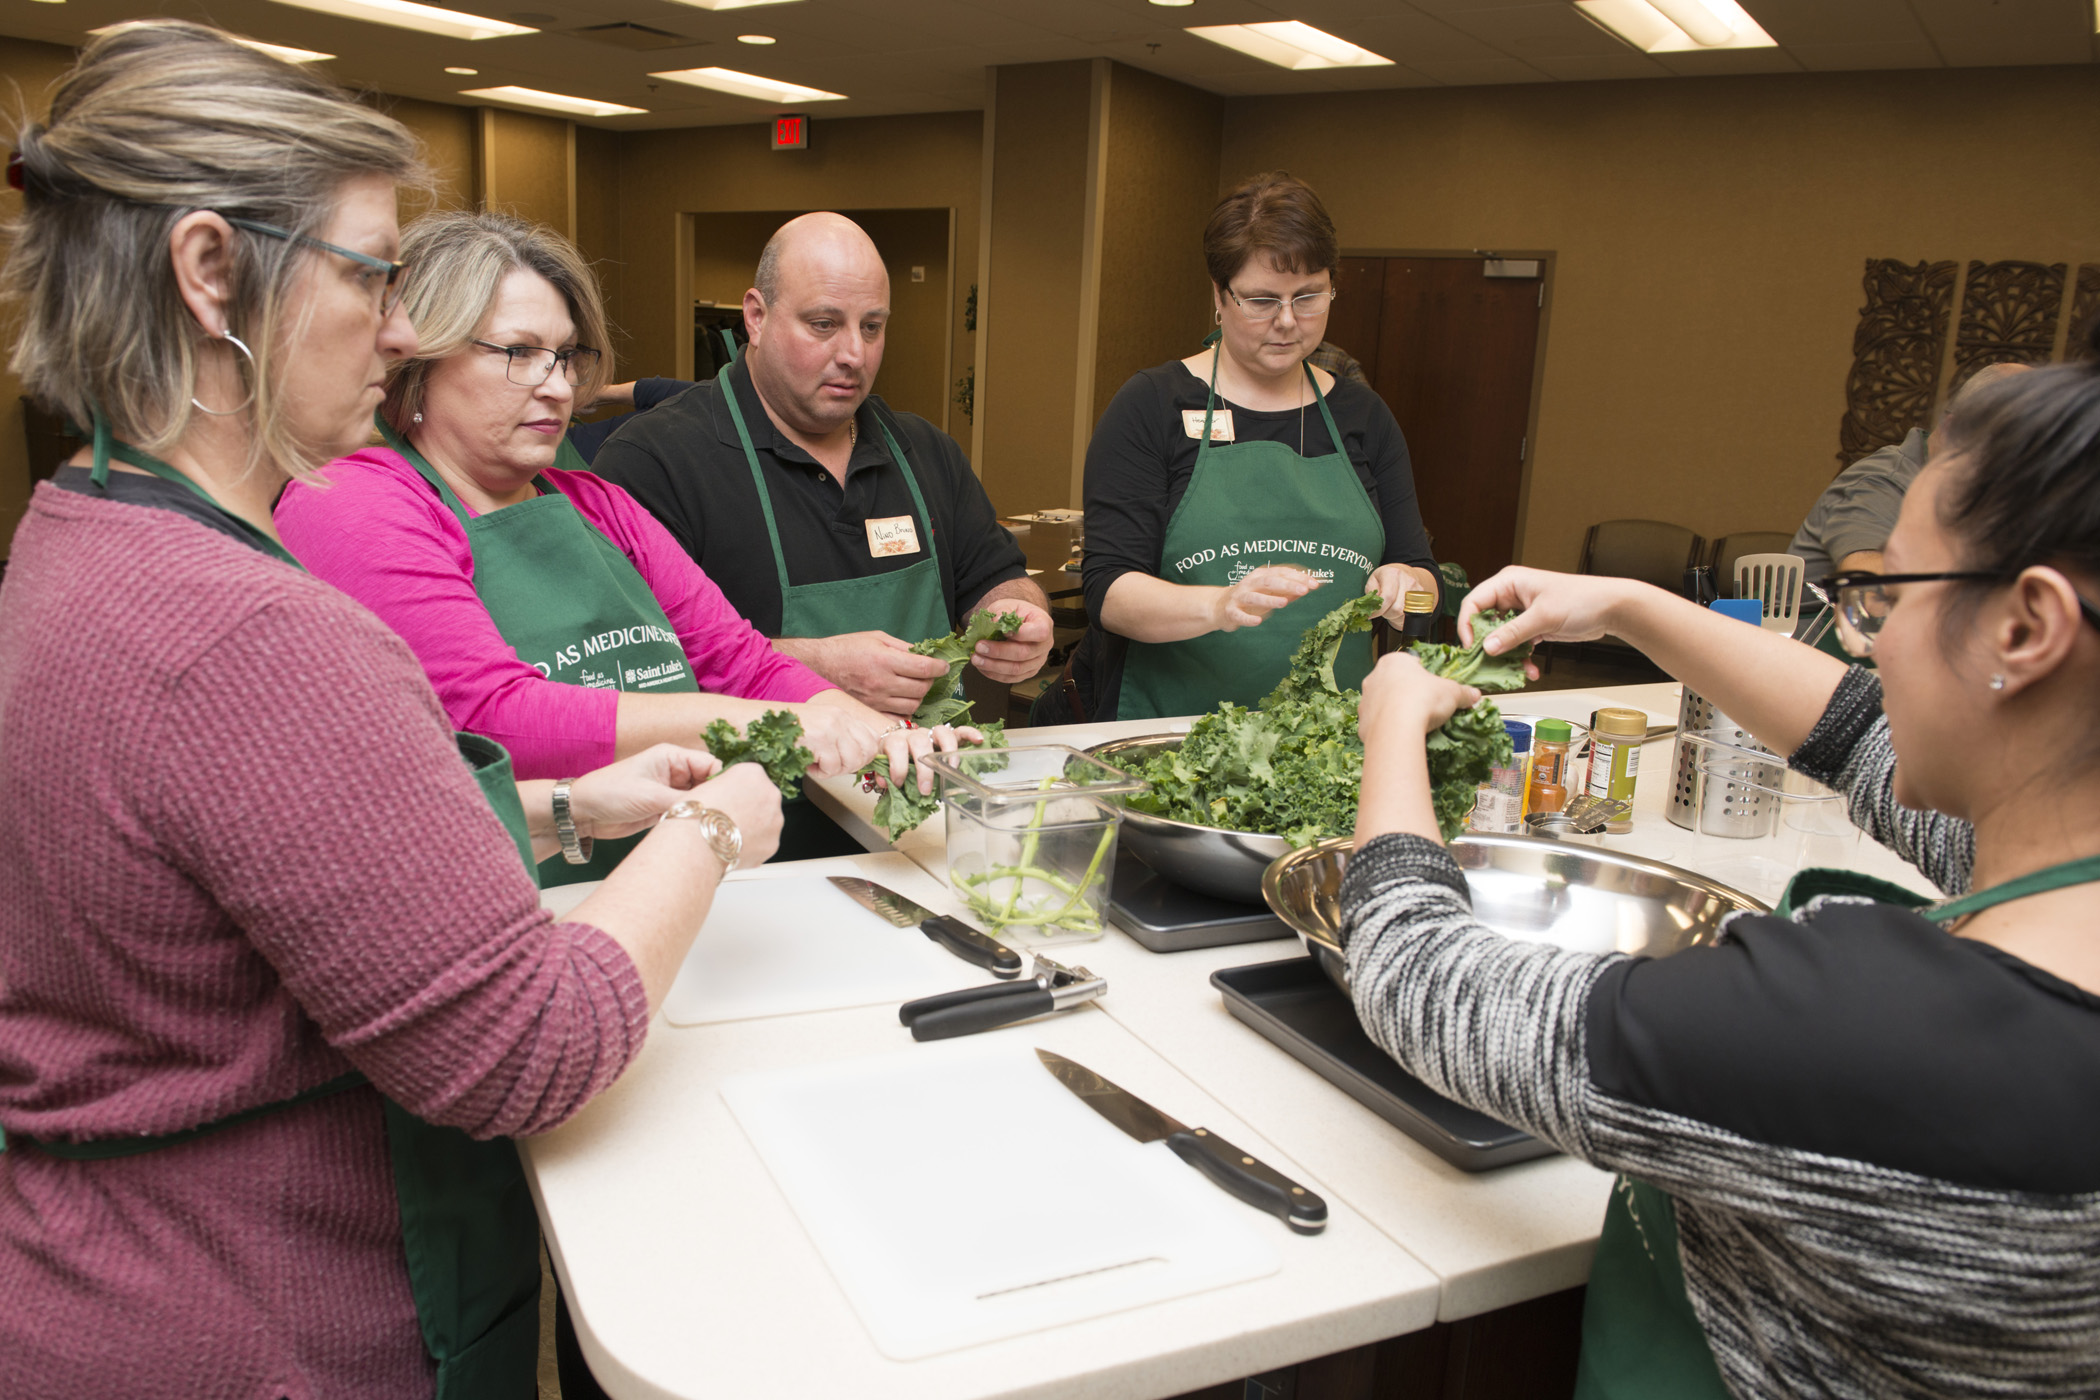 Saint Luke's FAME classes provide nutritious, hands-on cooking instruction.